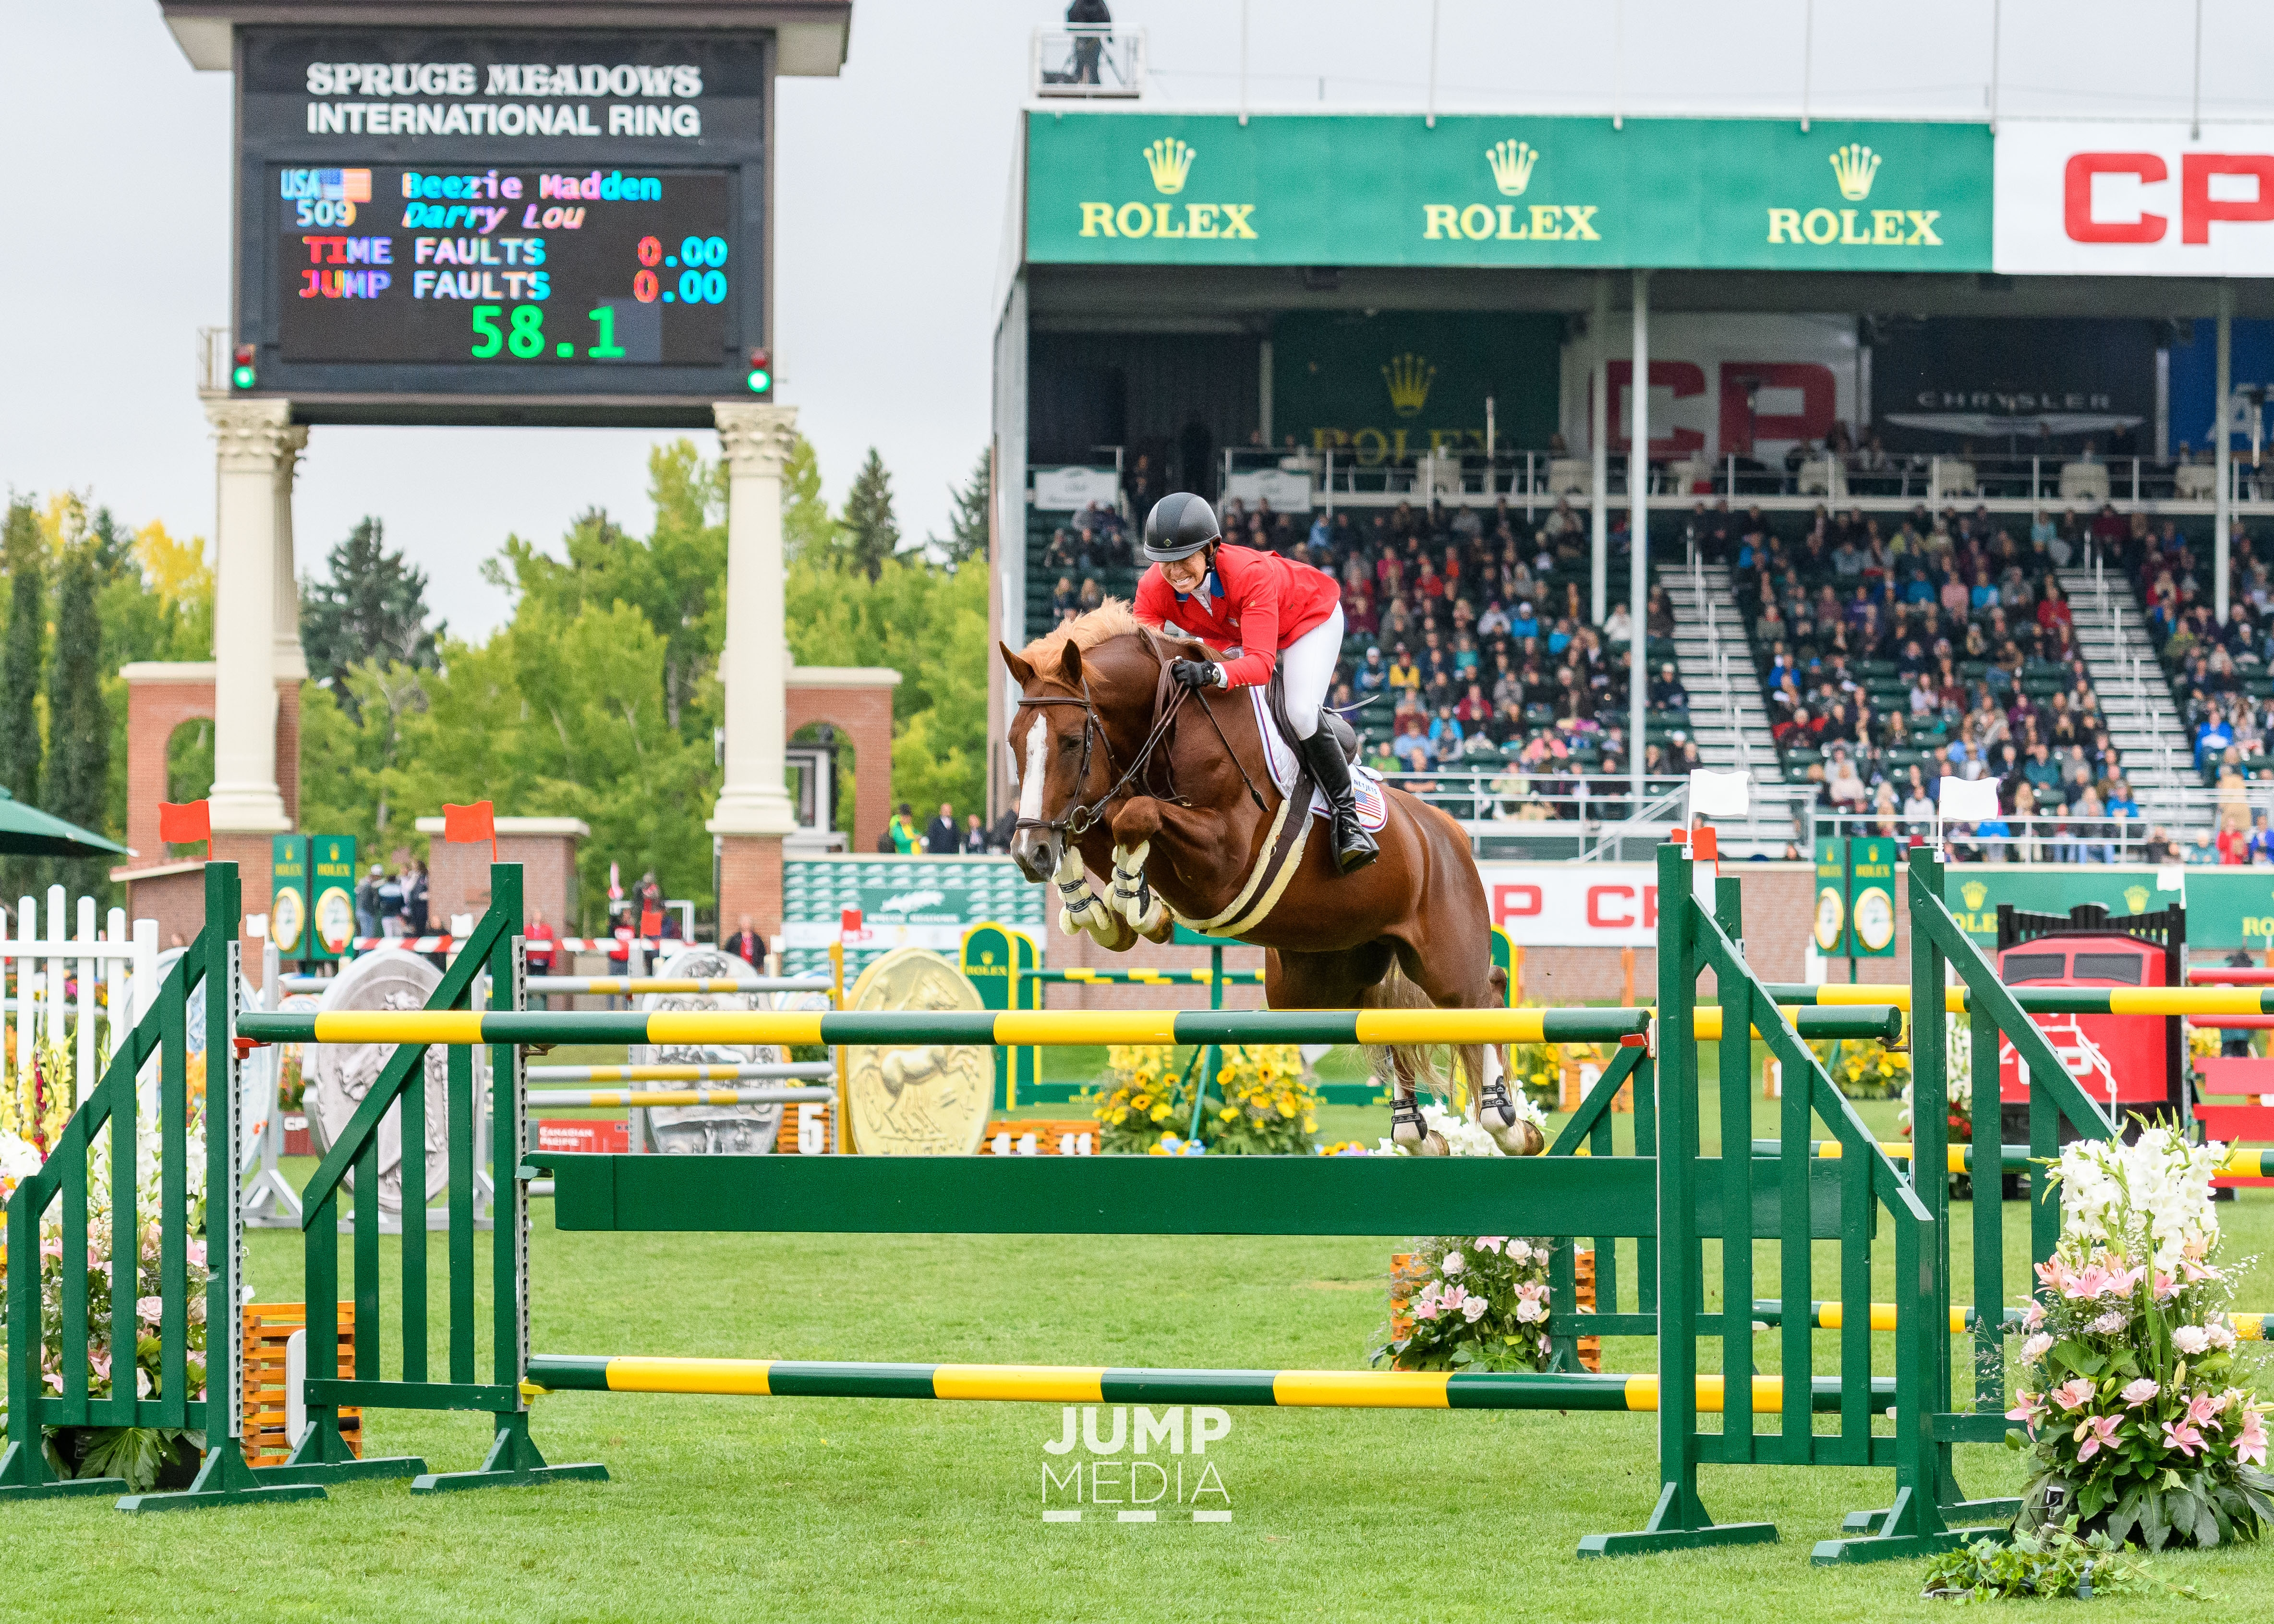 Beezie Madden and Darry Lou Win $3 Million CP 'International